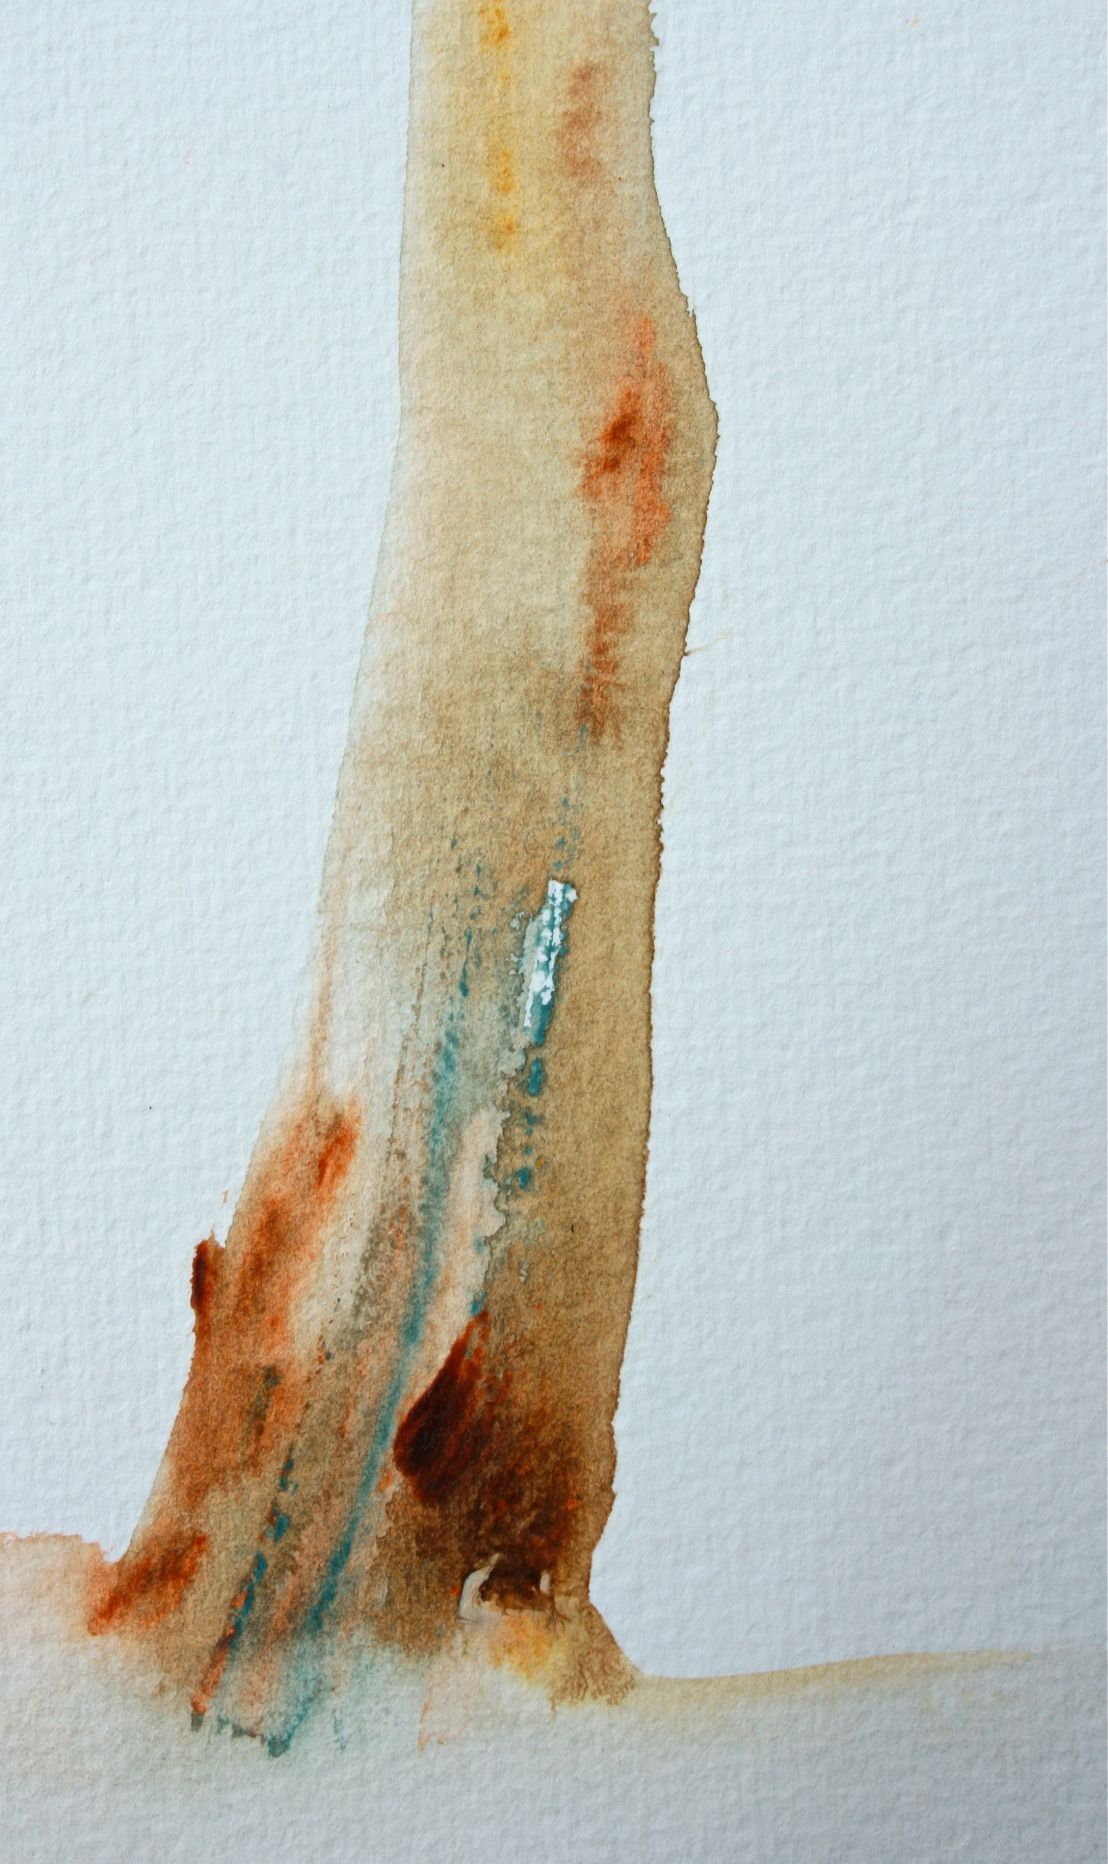 Watercolours with Paletteknife